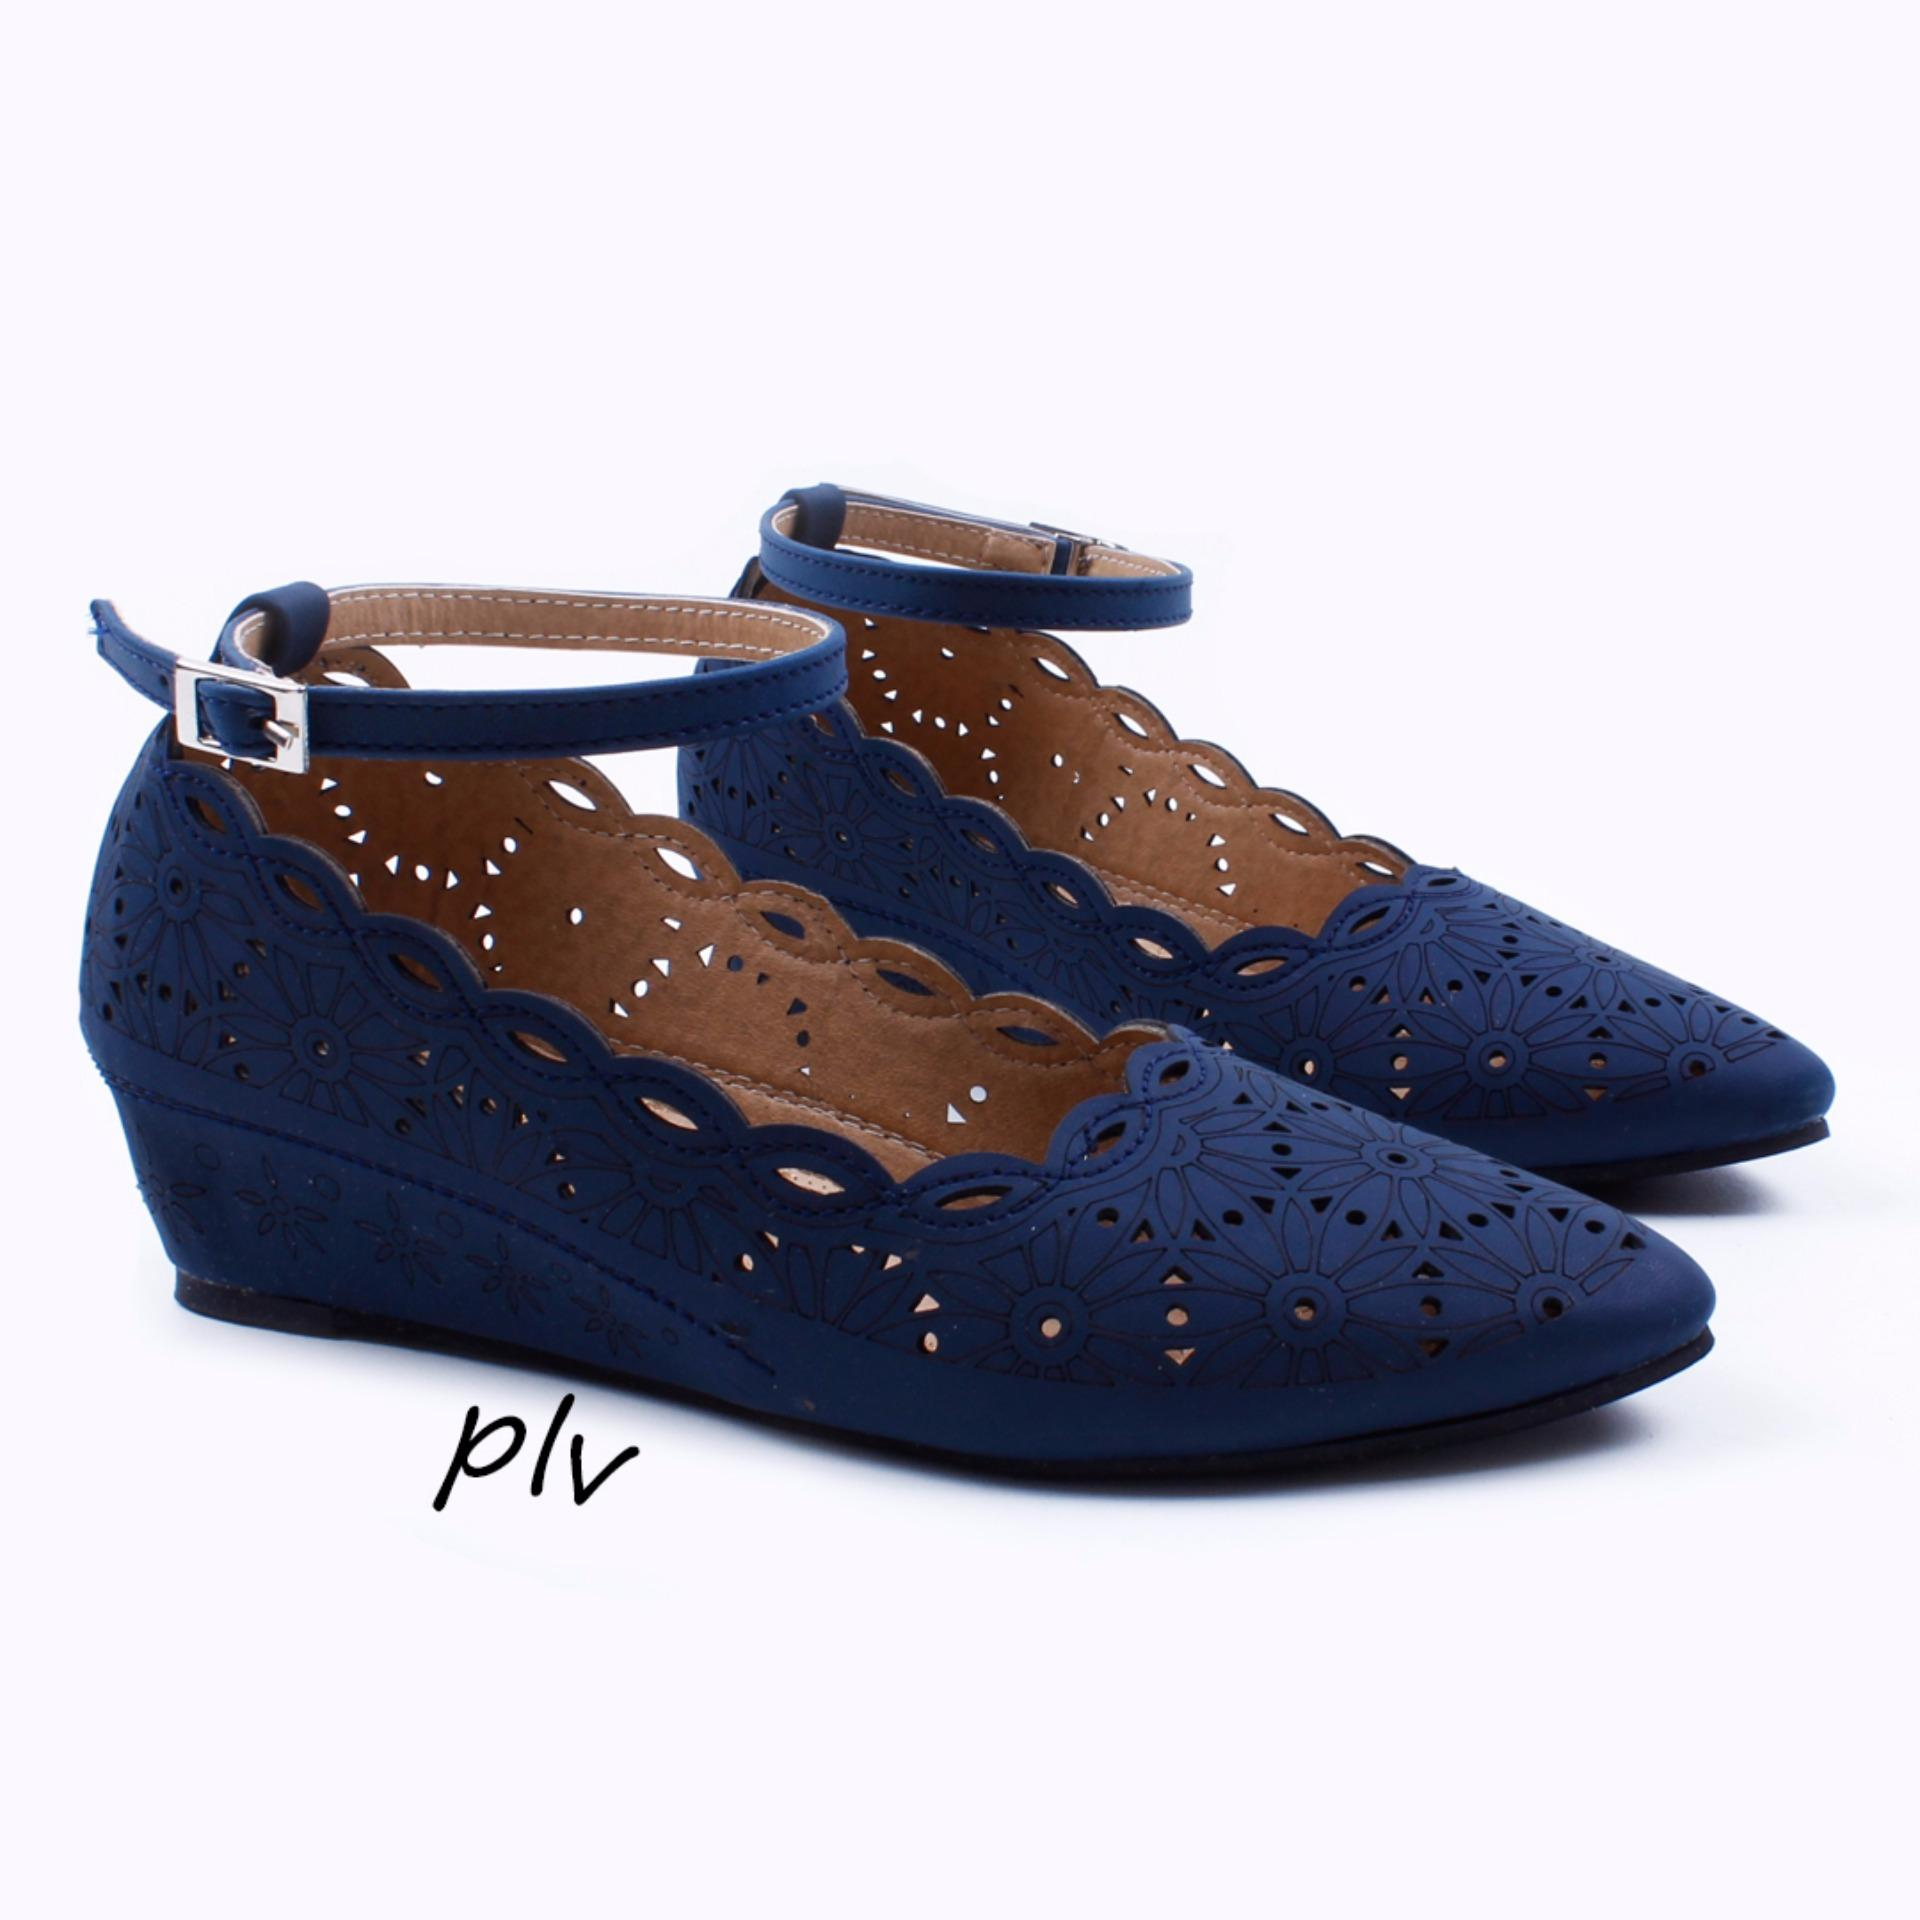 Beli Pointed Toe Ankle Strap Hidden Heel Wedges Bs27 Navy Online Murah